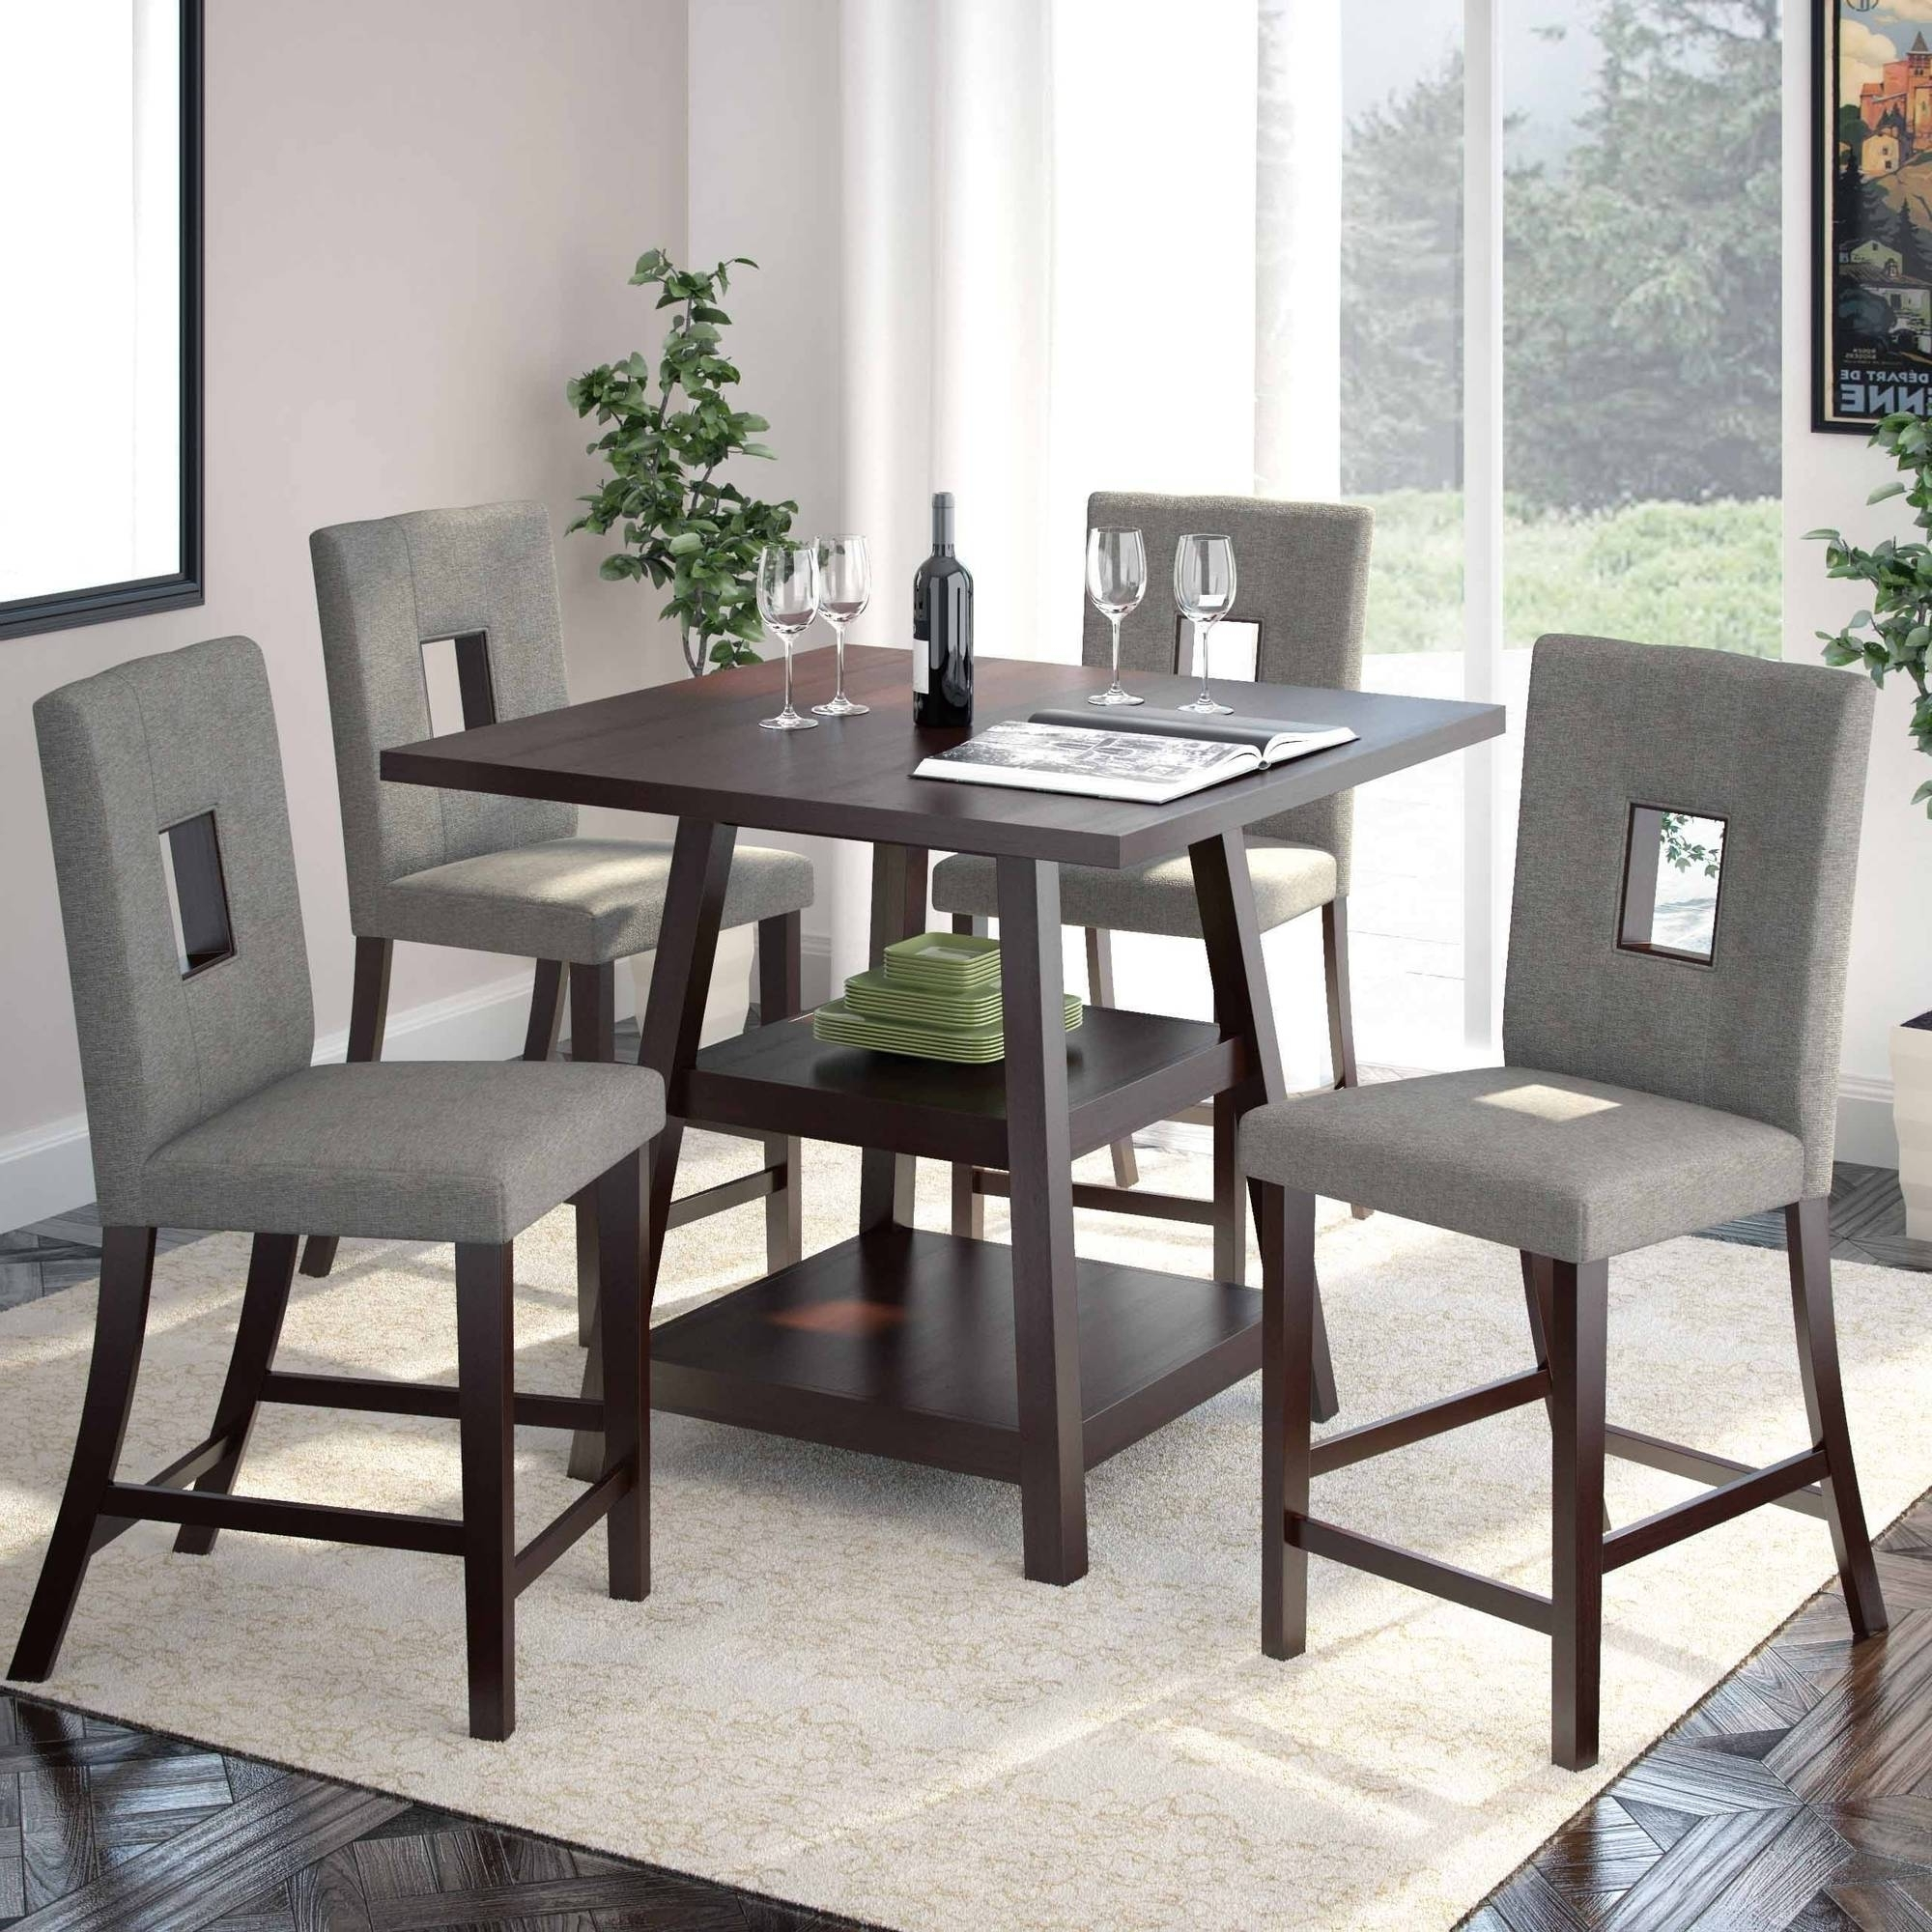 """Corliving Bistro 5Pc 36"""" Counter Height Rich Cappuccino Dining Set Intended For Most Recently Released Market 5 Piece Counter Sets (View 6 of 25)"""